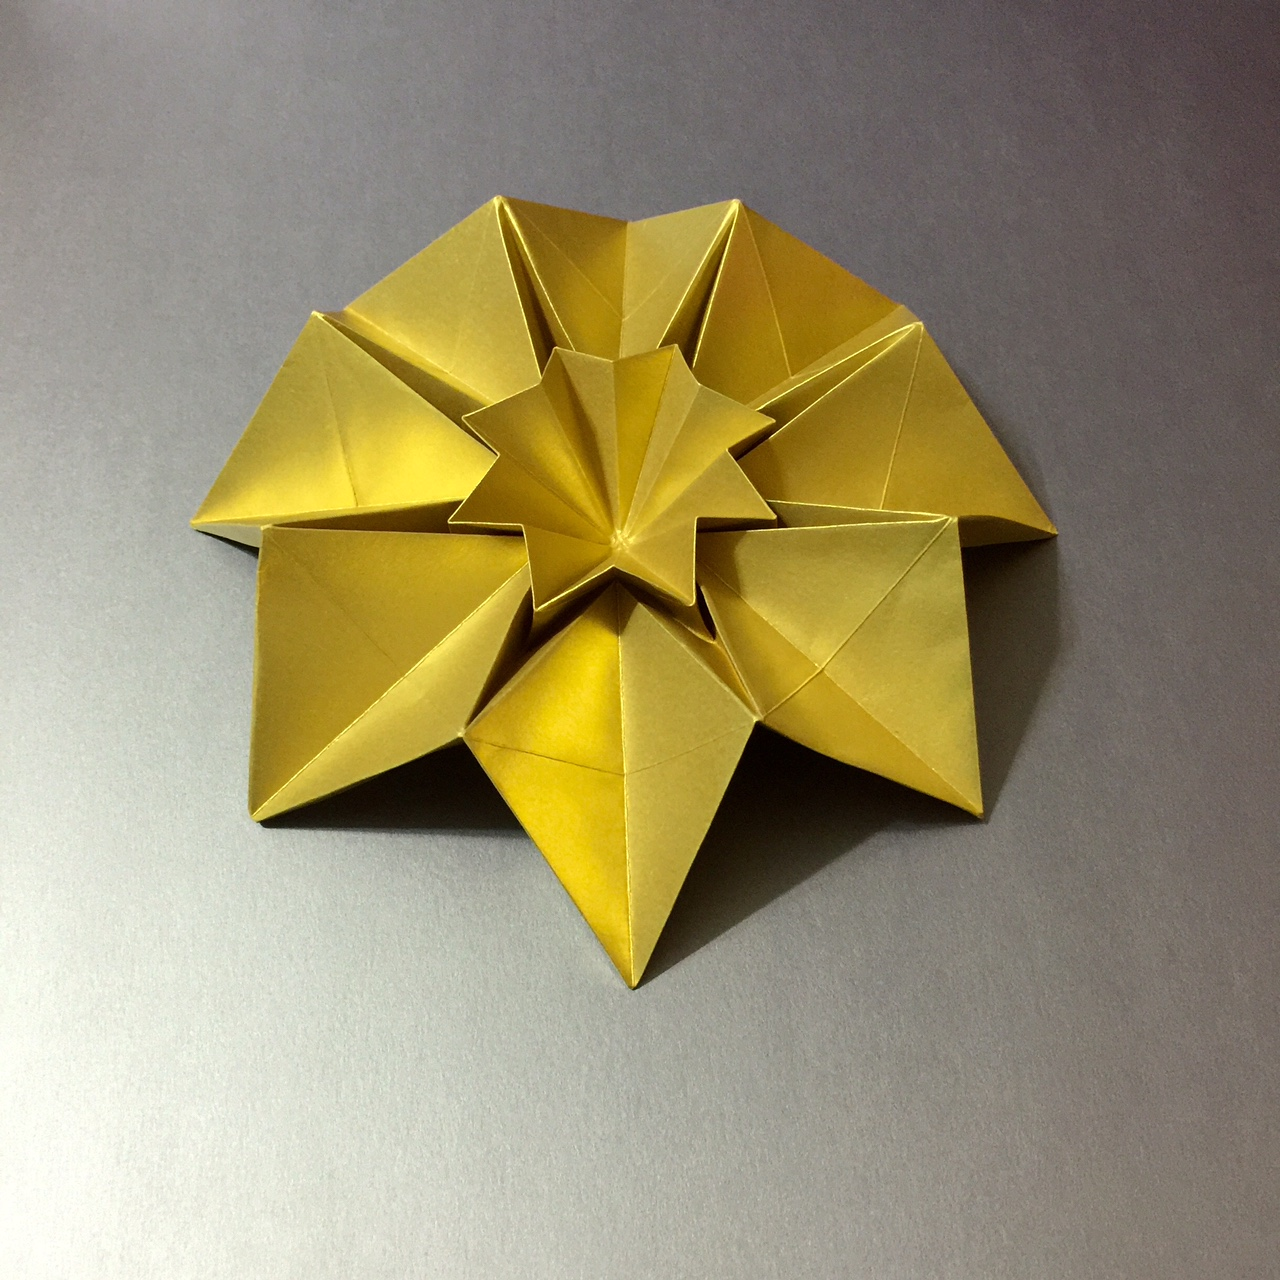 Origami Star Blessilda - photo#39